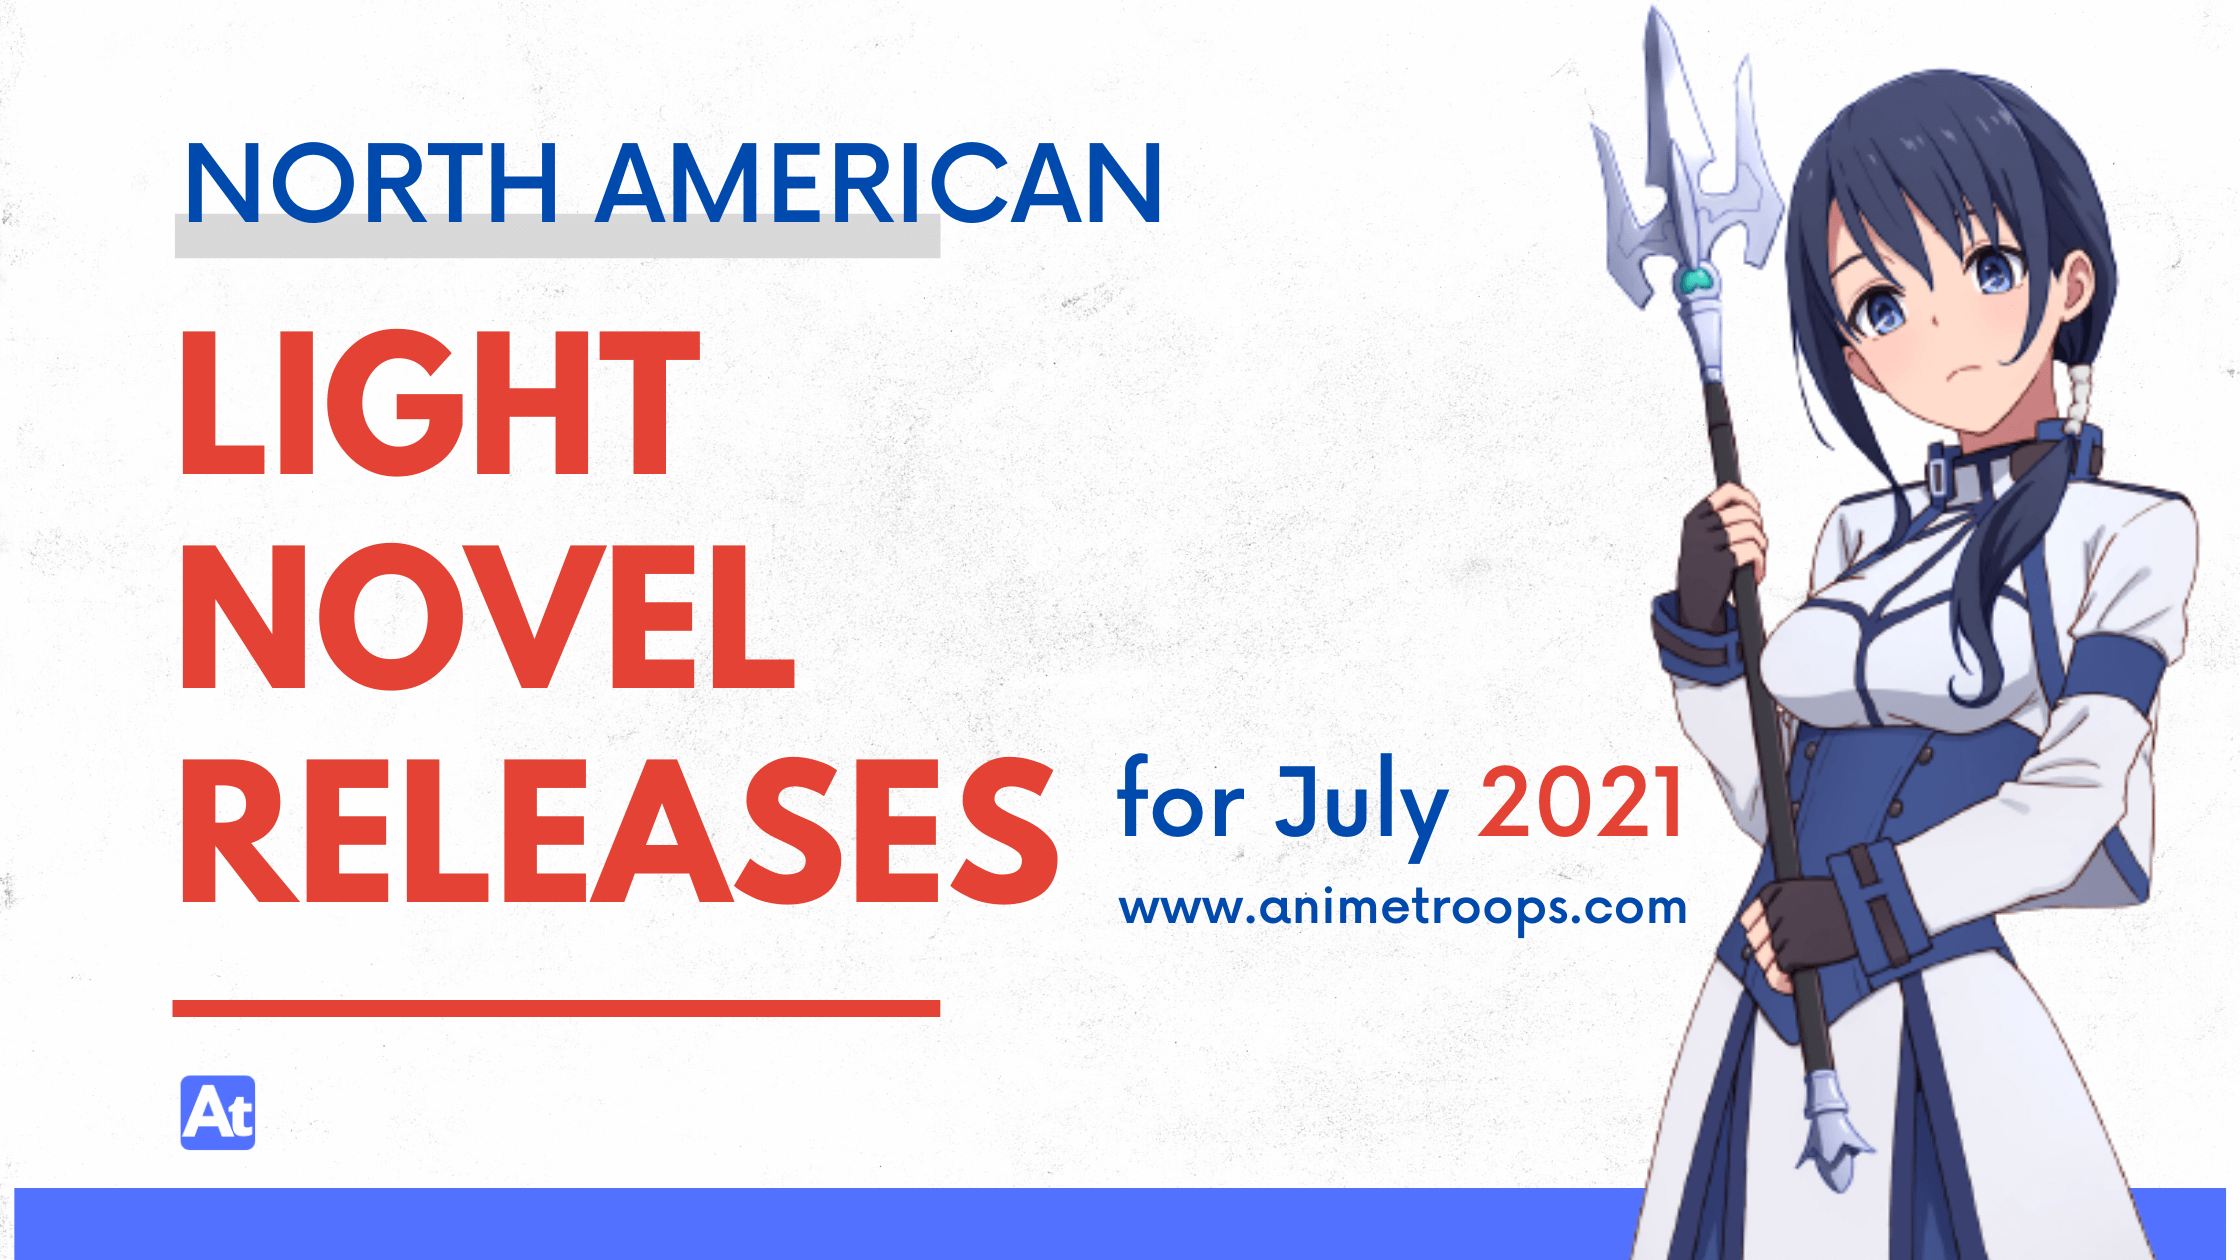 North American Light Novel Releases for July 2021